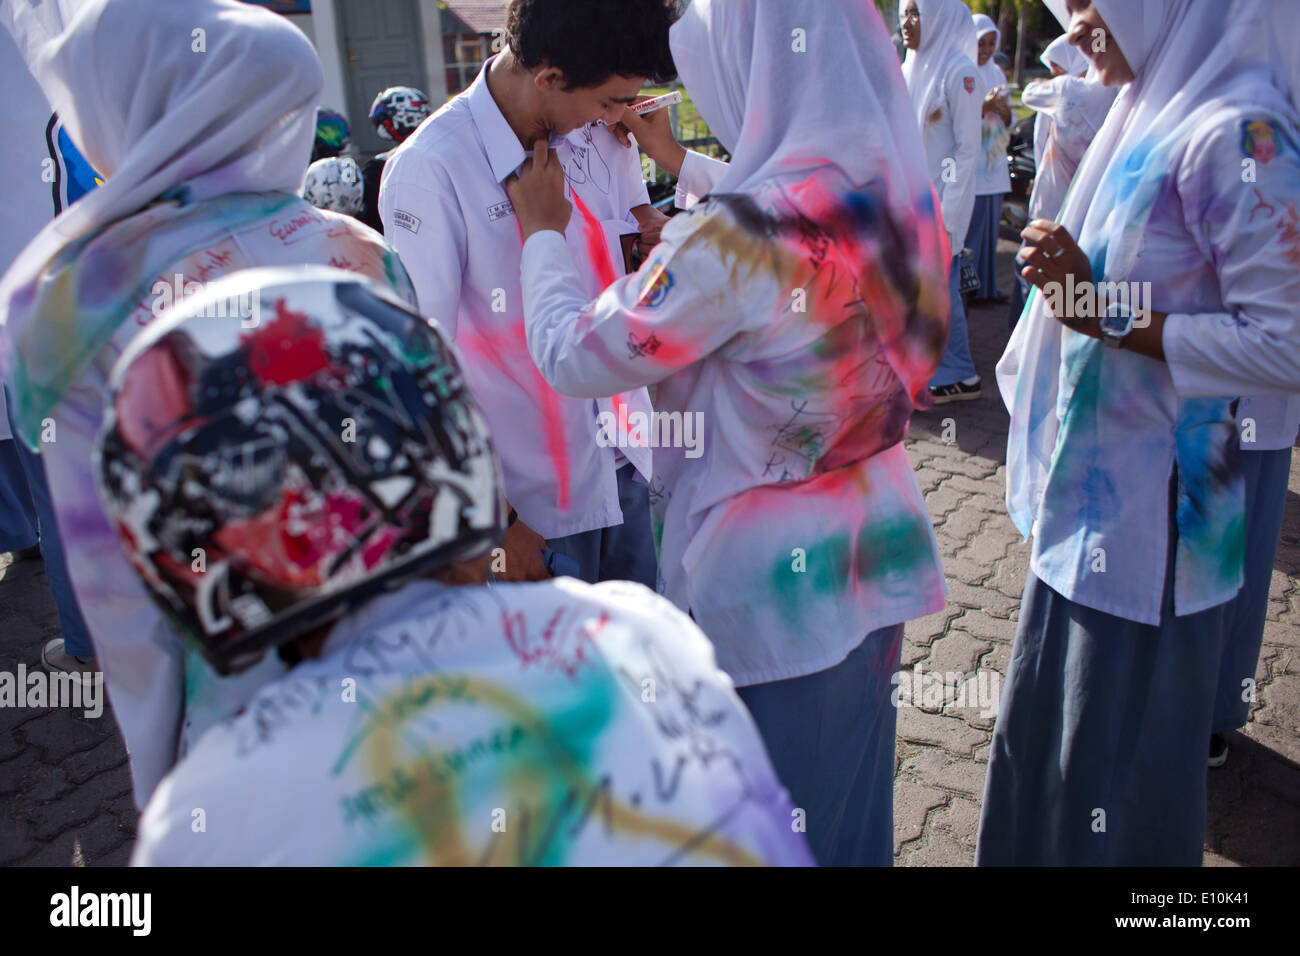 May 20, 2014 - Banda Aceh, Aceh, Indonesia - Students from a high school in Banda Aceh celebrates their graduation Stock Photo